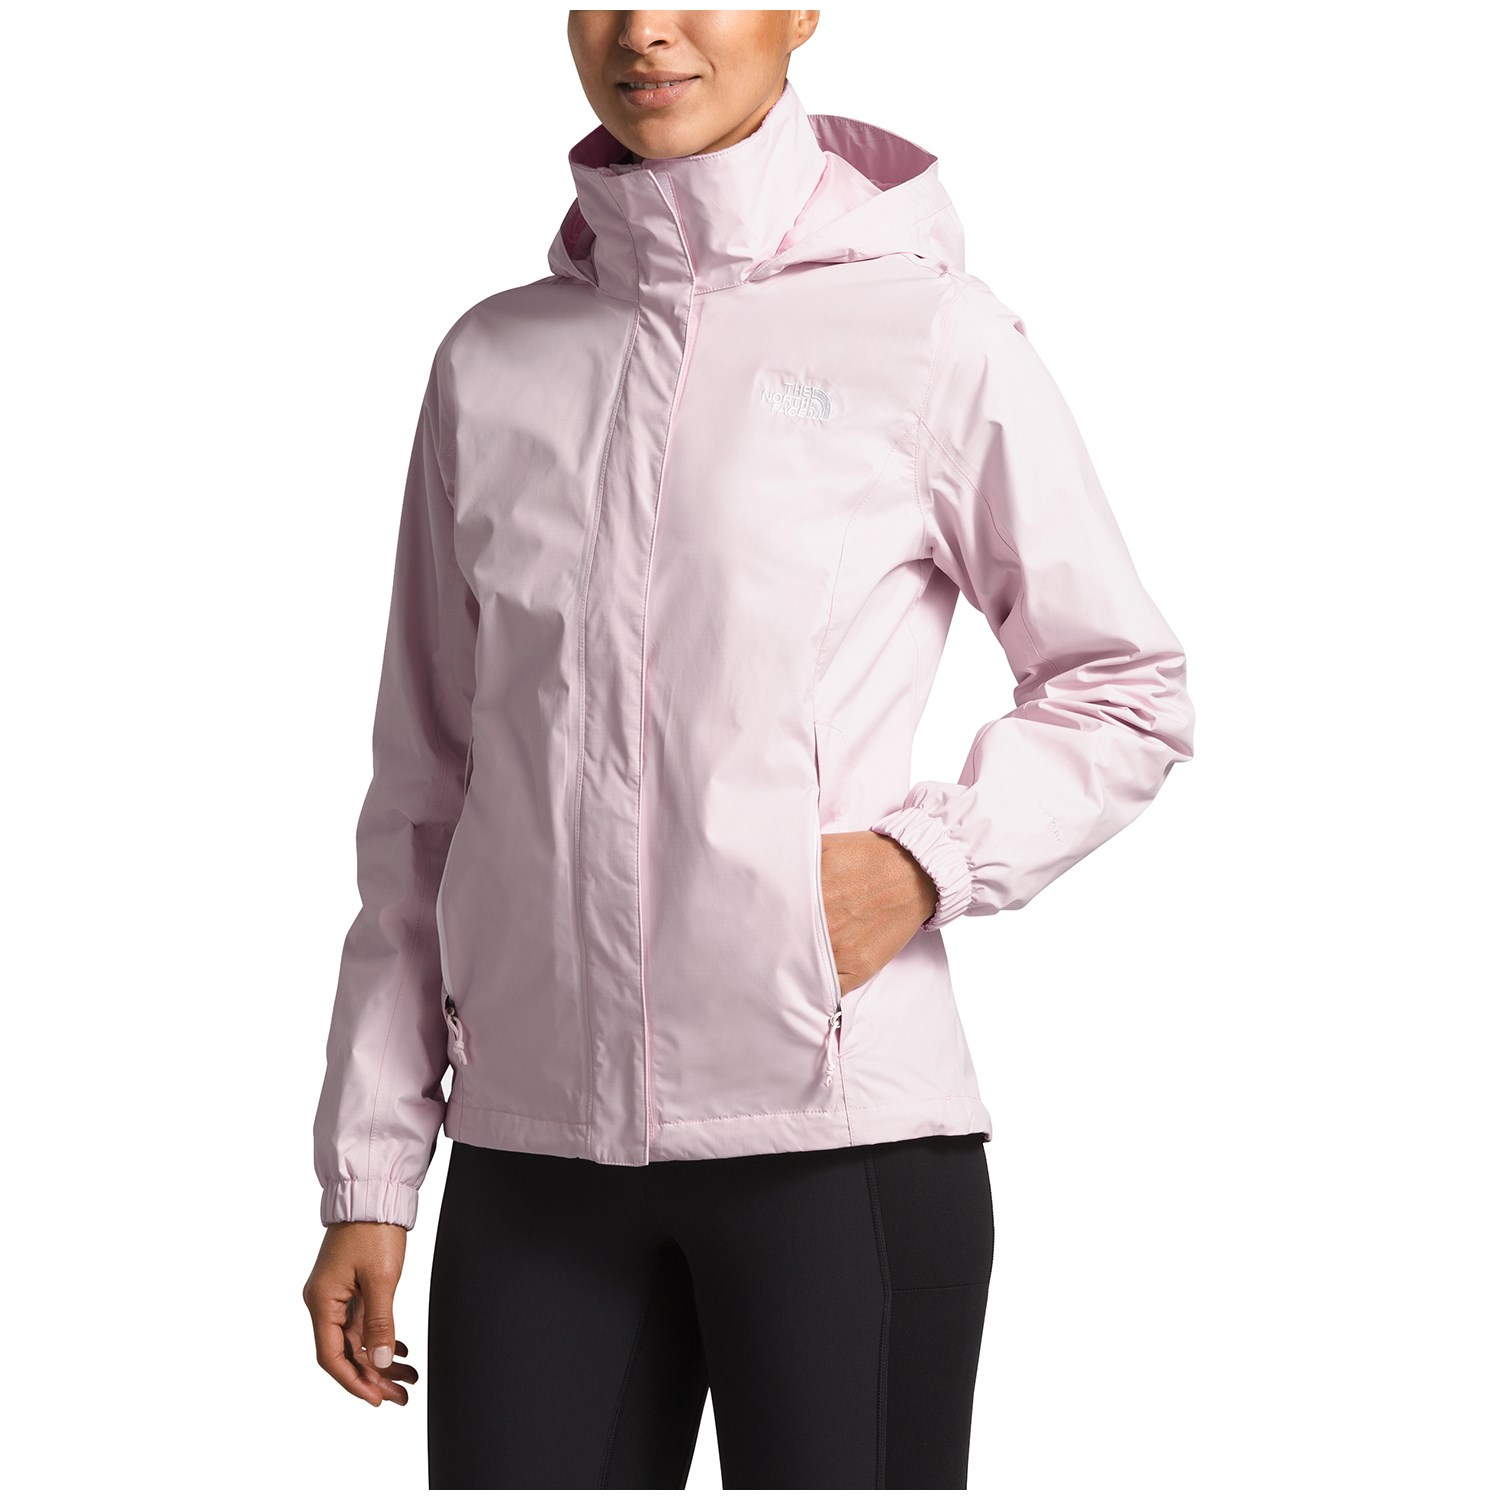 7fb2dc674 The North Face Resolve 2 Jacket - Women's